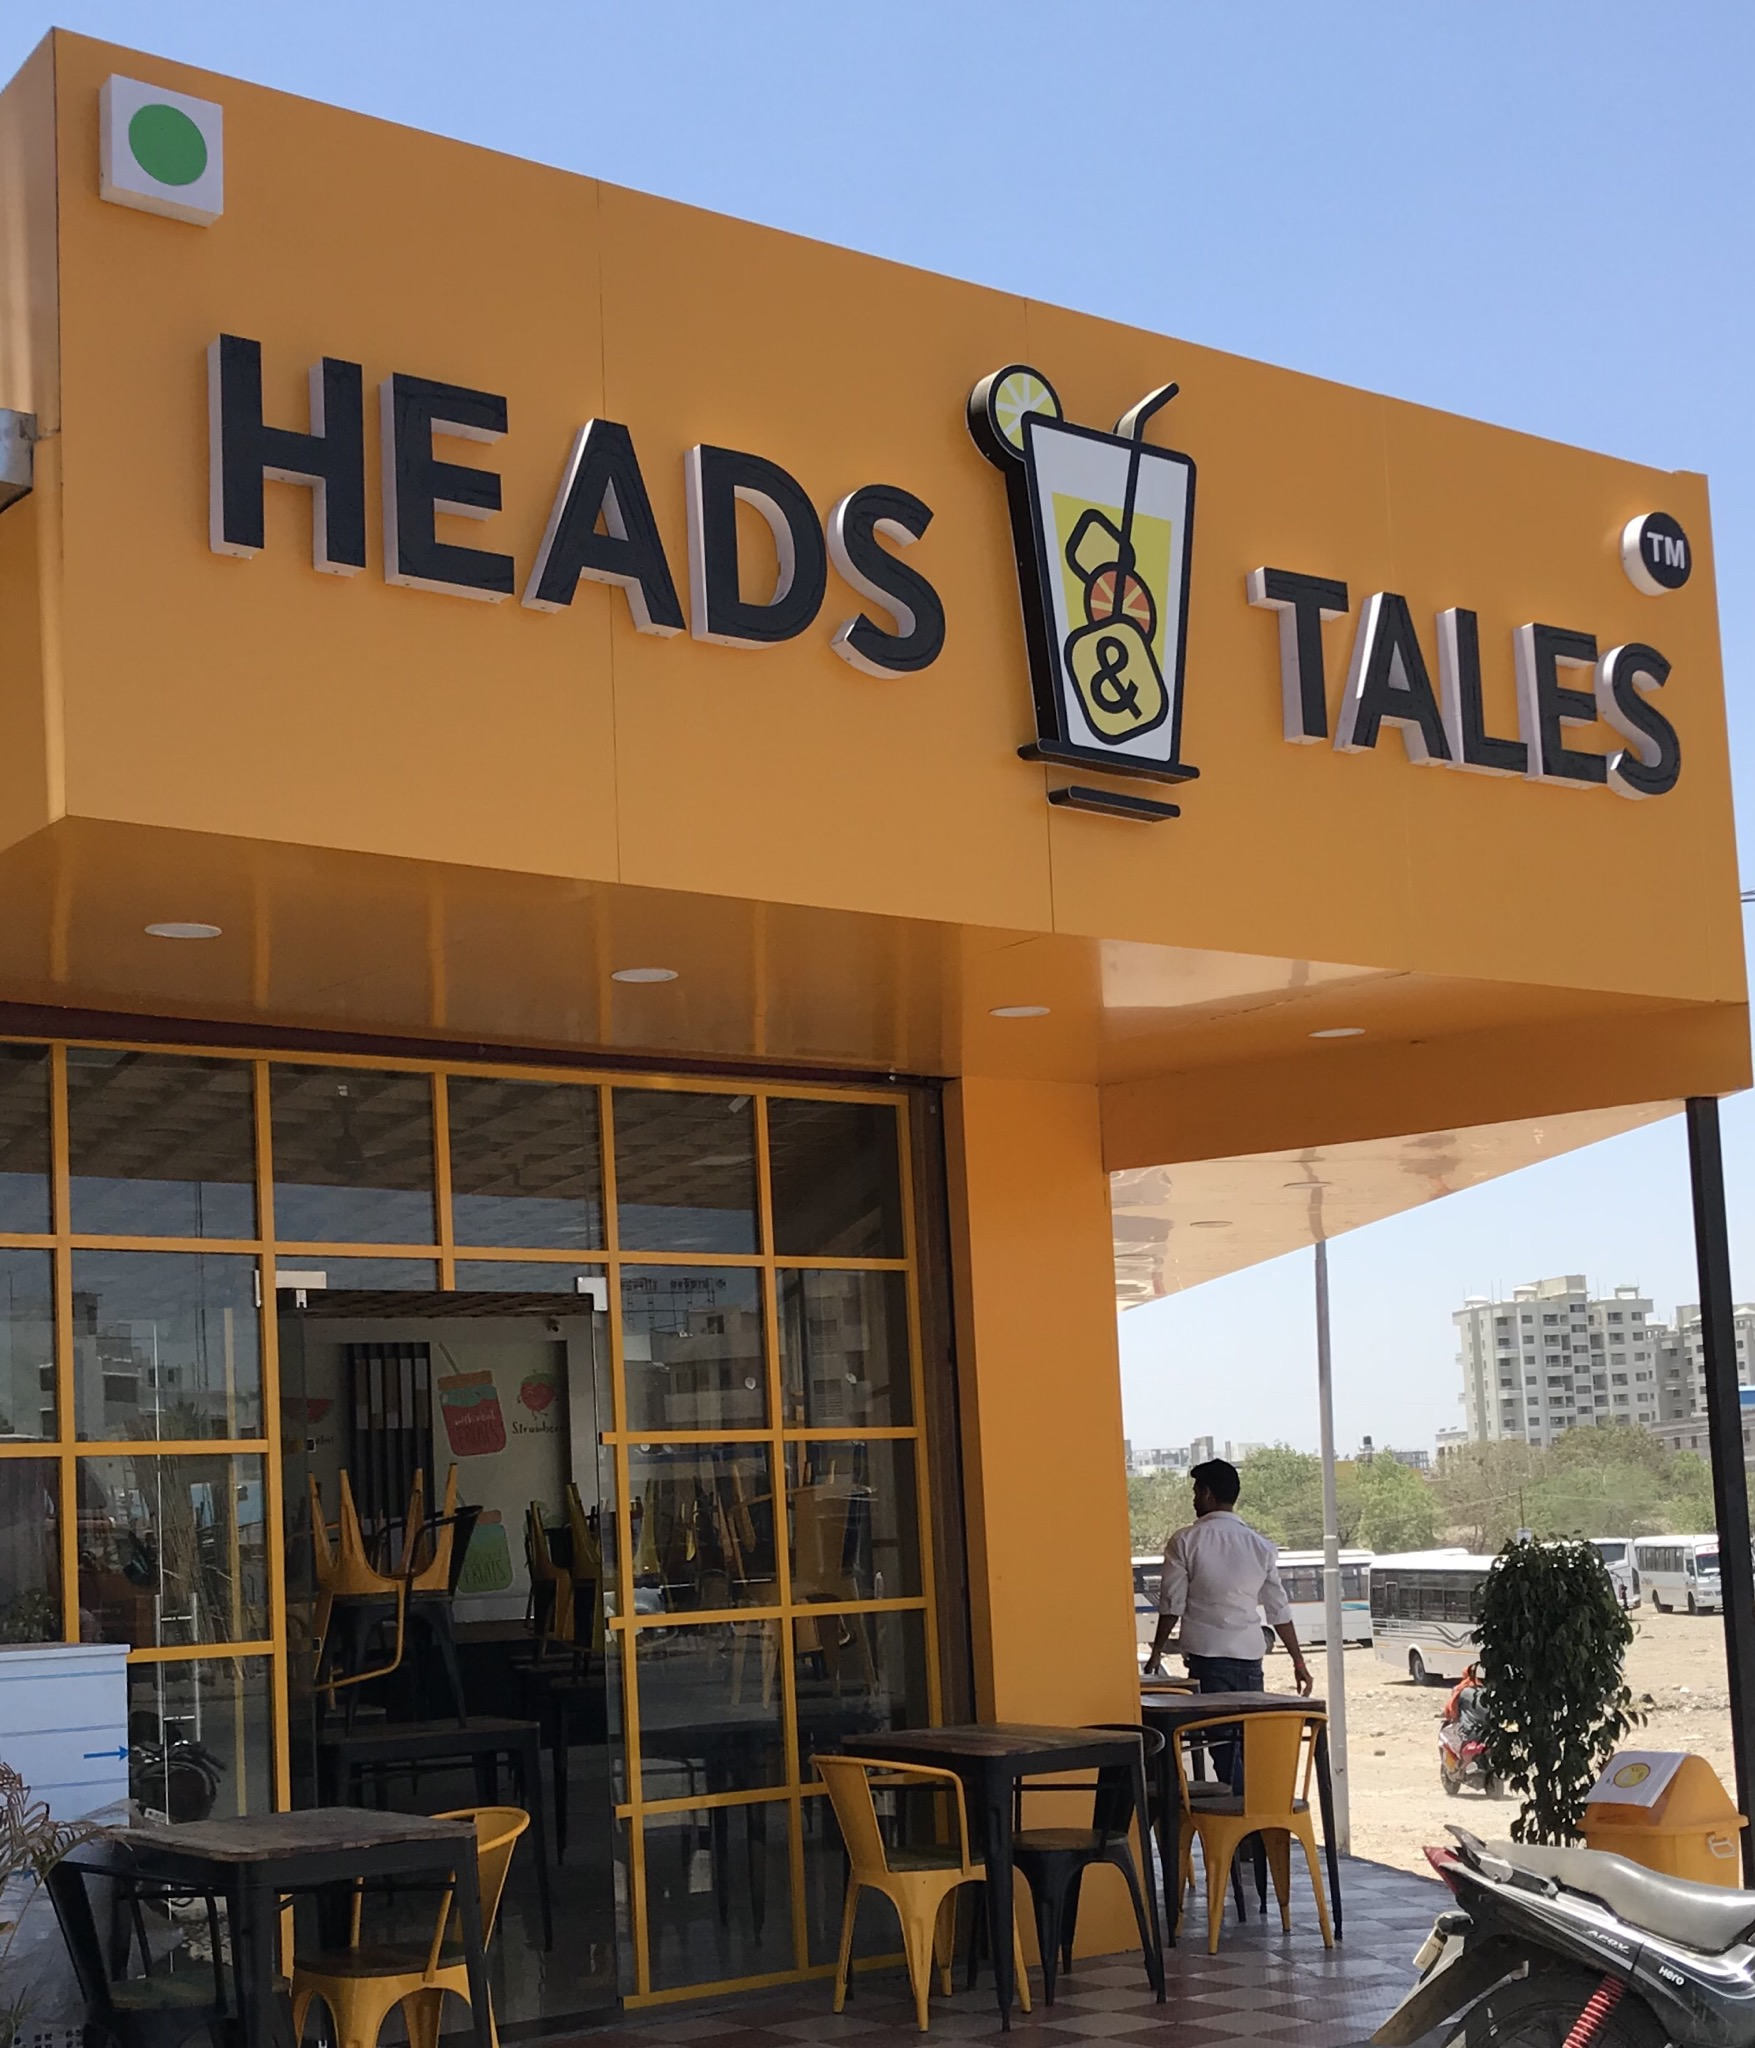 Heads & Tales Cafe in Wagholi Pune